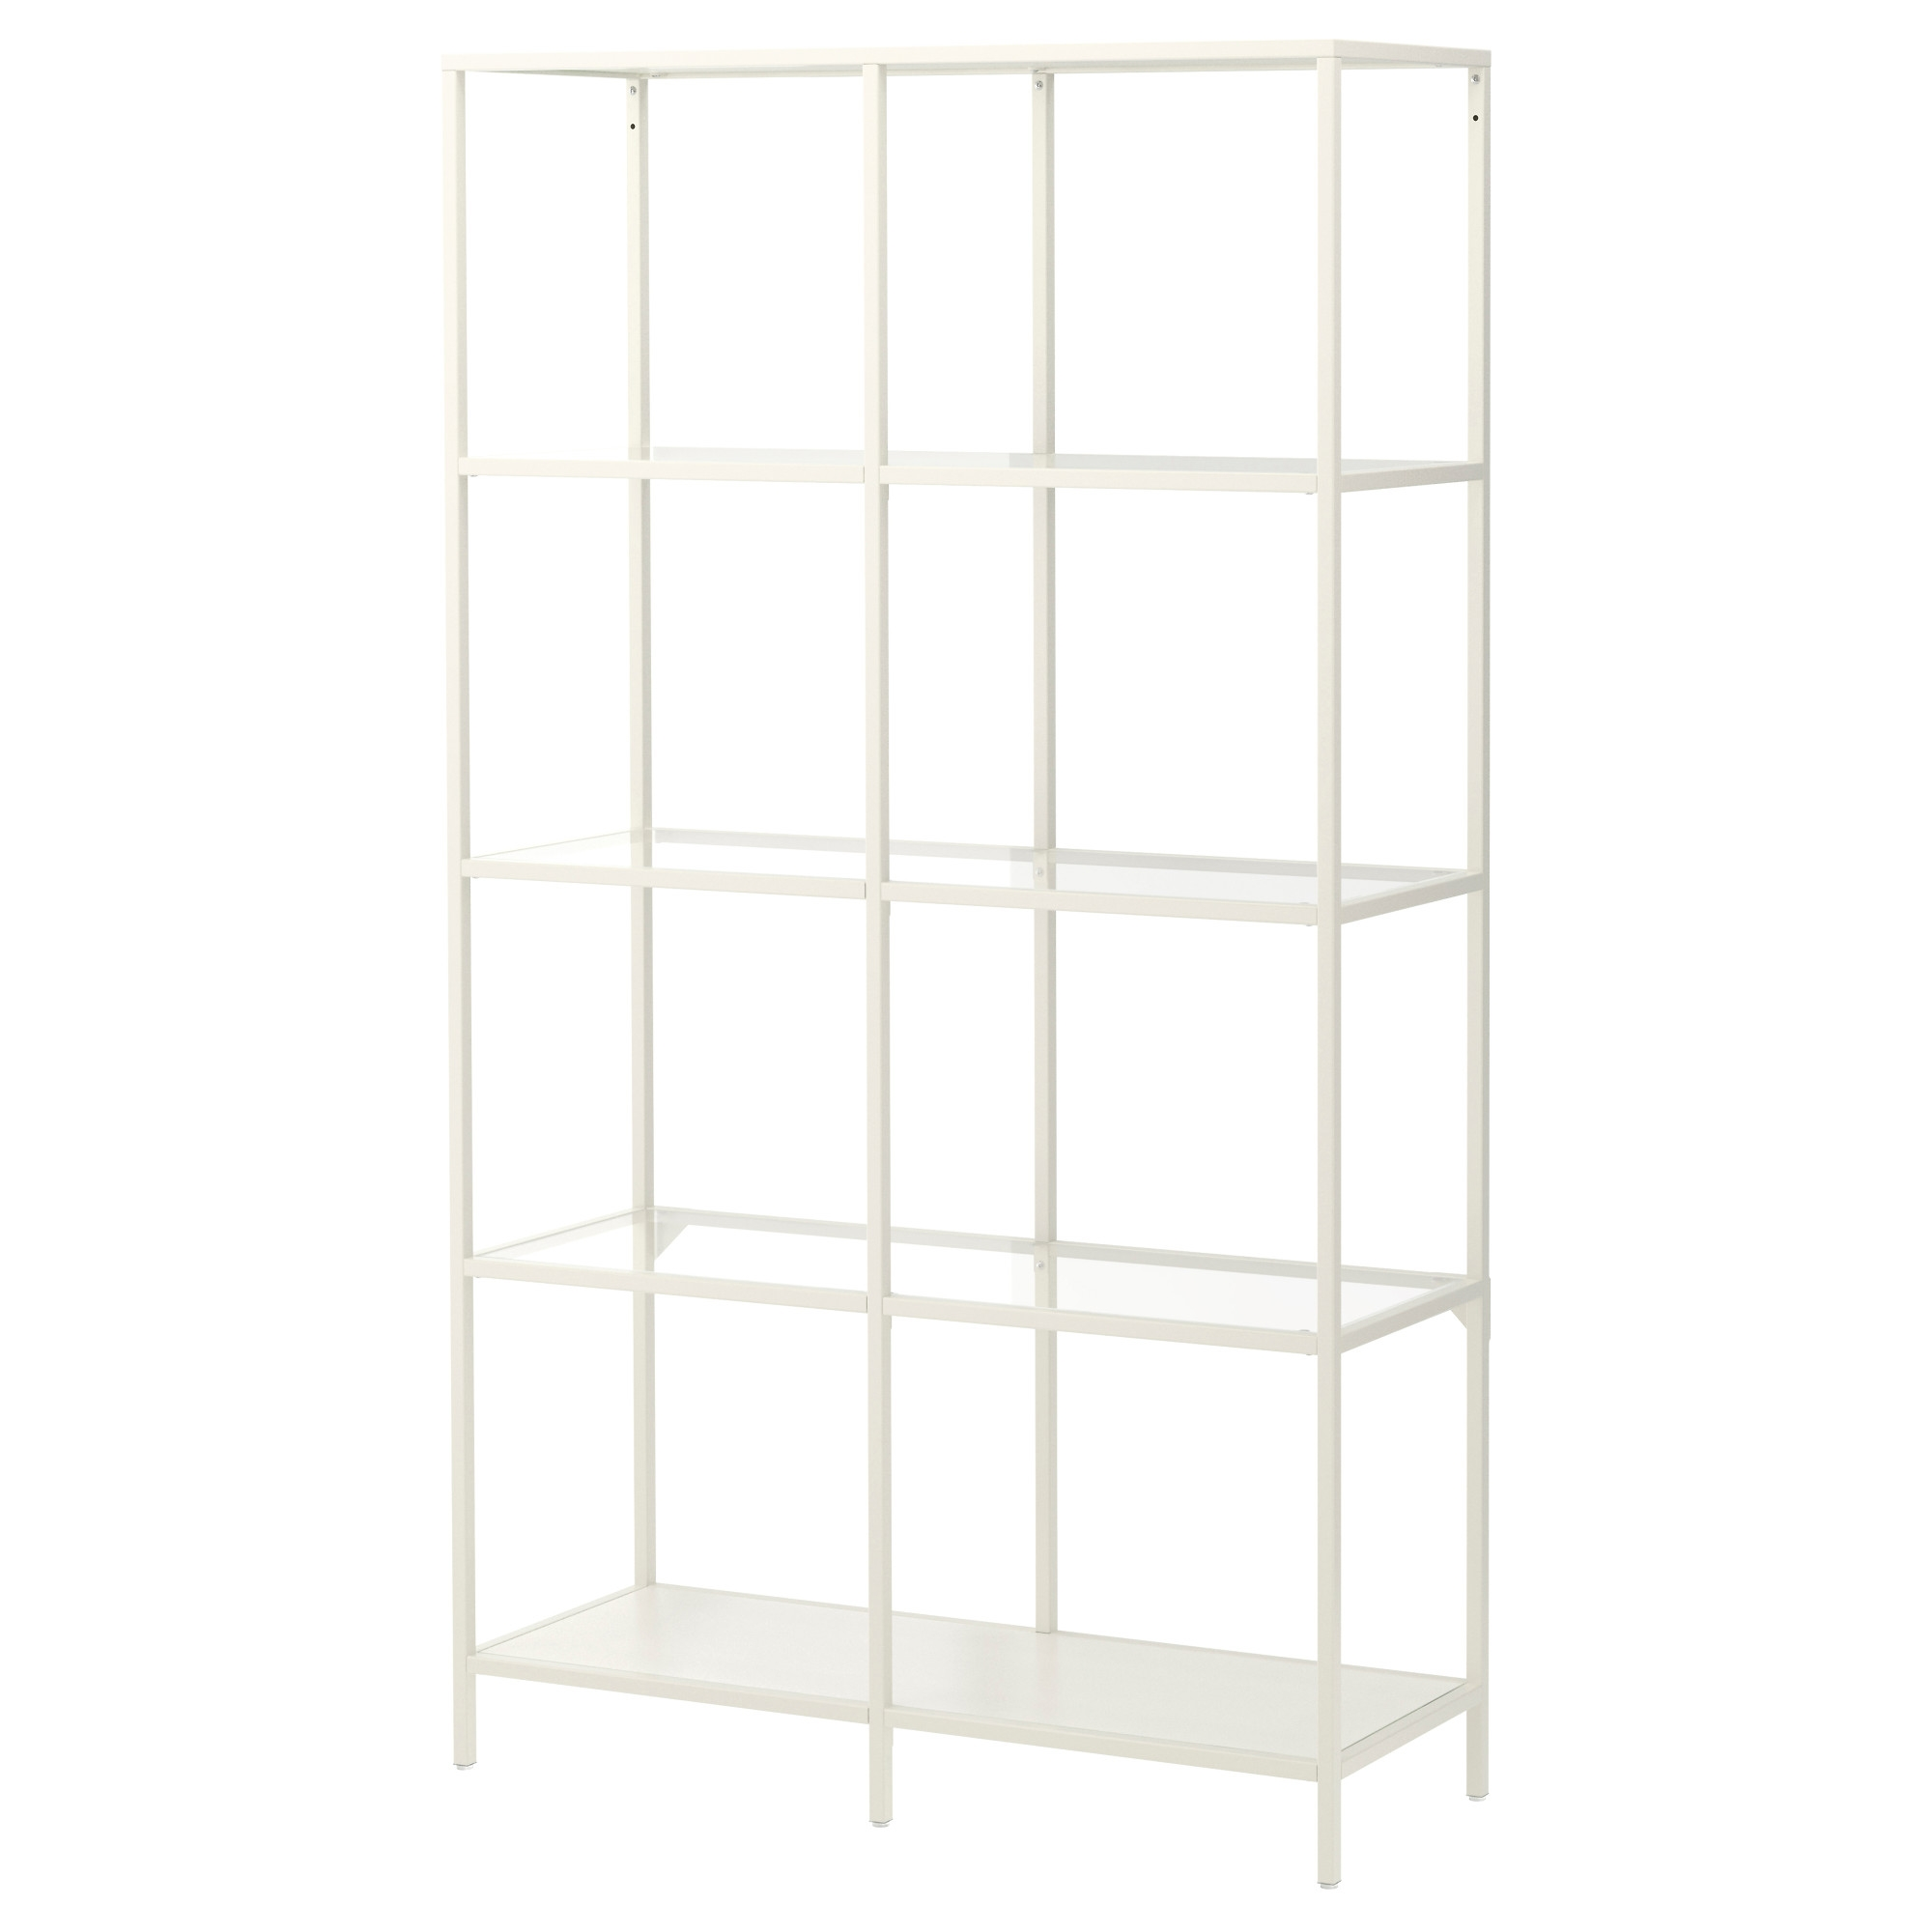 Shelves Shelving Units Ikea Throughout White Shelving Units (#12 of 15)